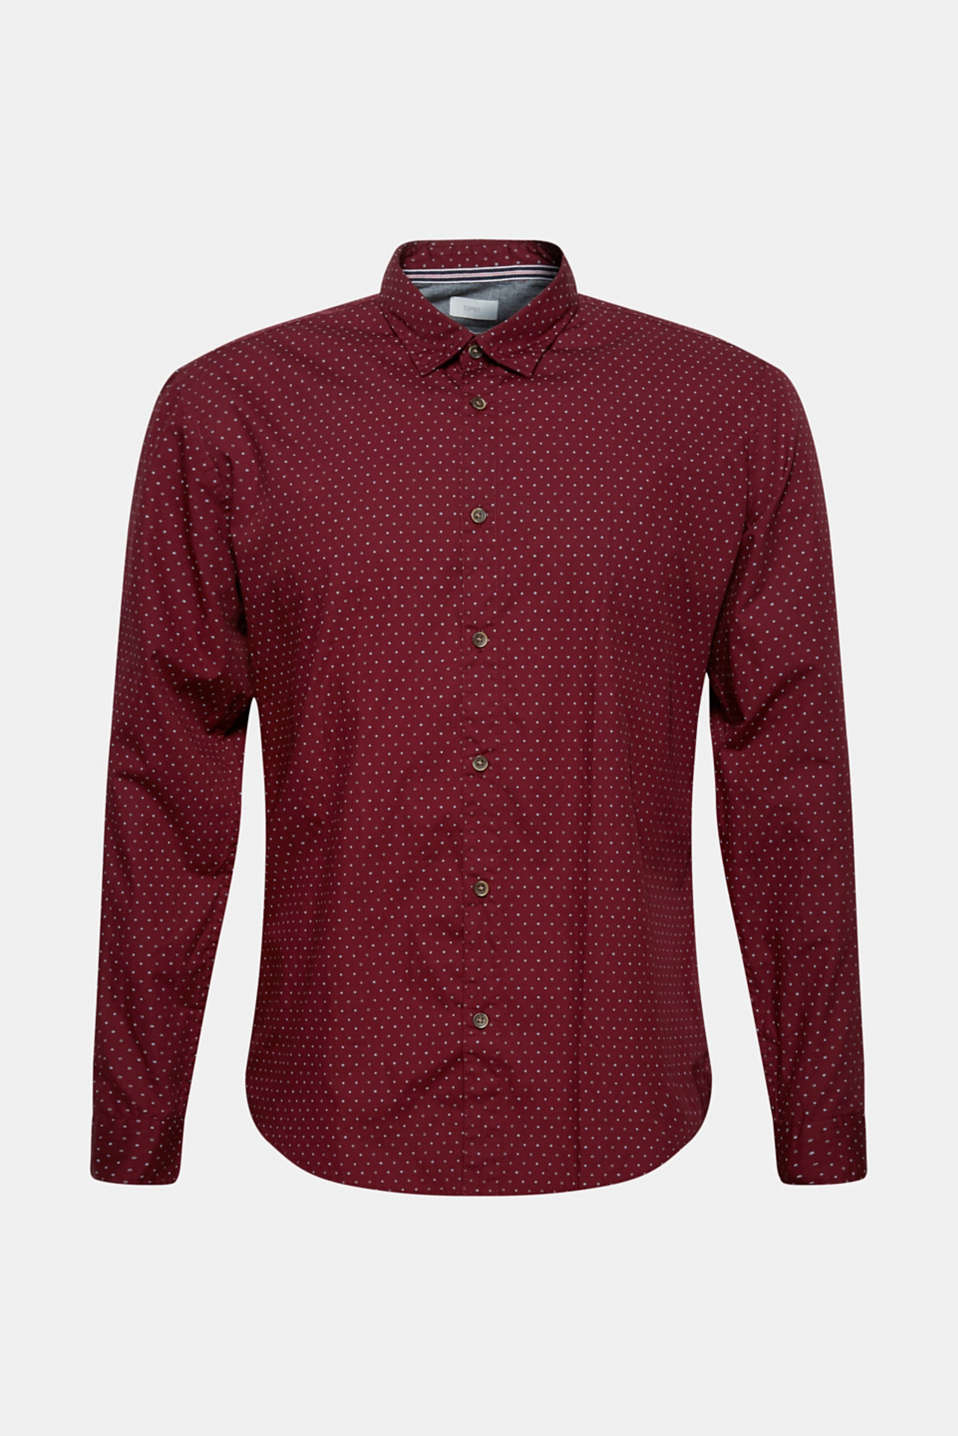 Shirts woven Slim fit, BORDEAUX RED, detail image number 7